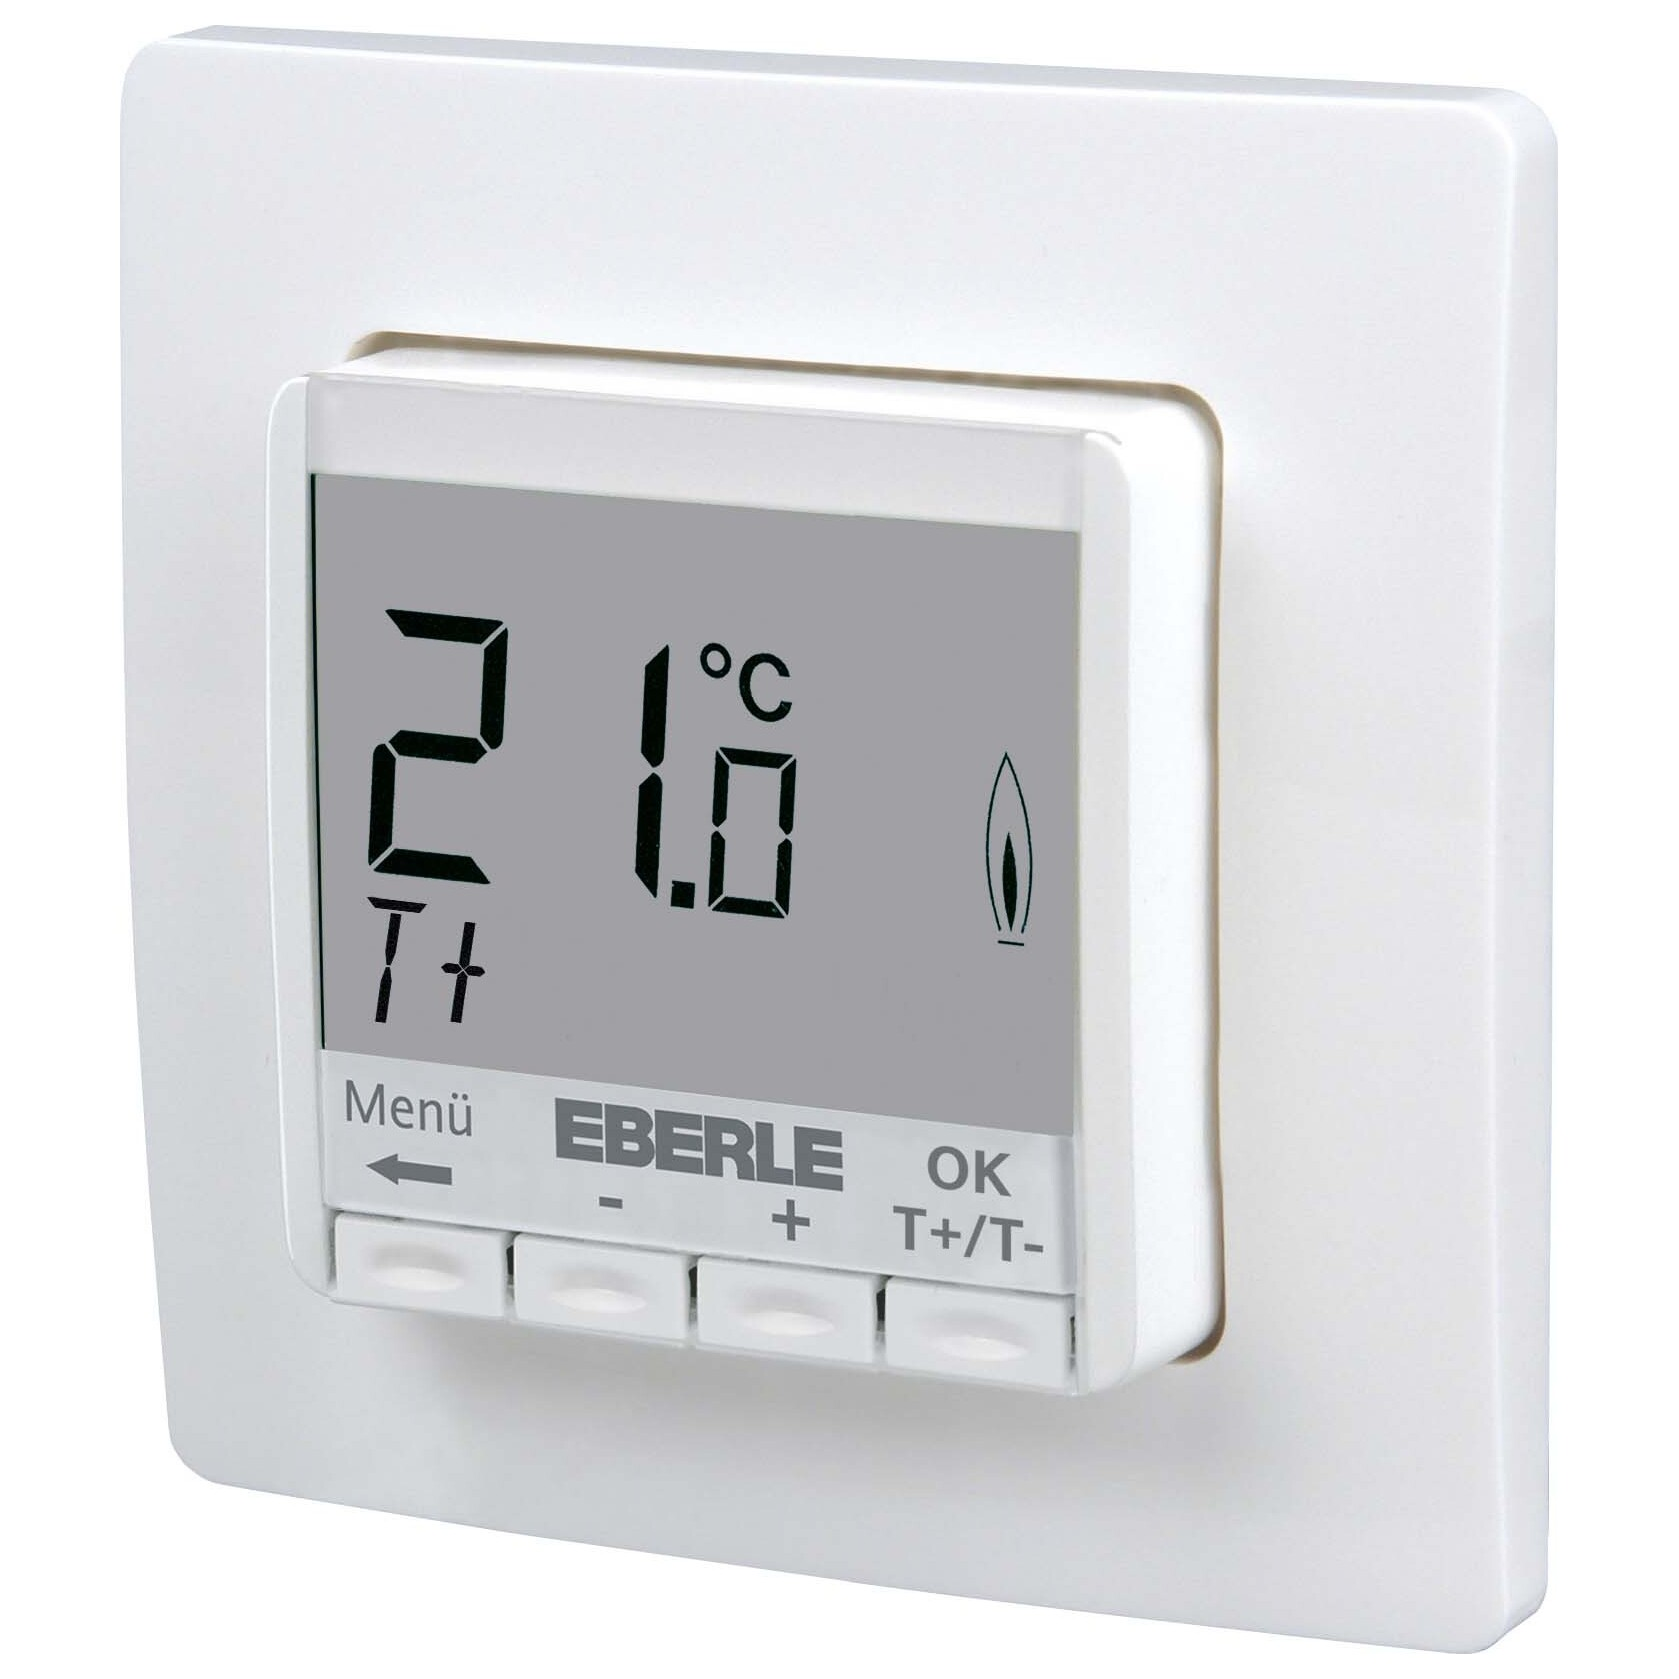 eberle controls up thermostat fit np 3r 527815455100. Black Bedroom Furniture Sets. Home Design Ideas